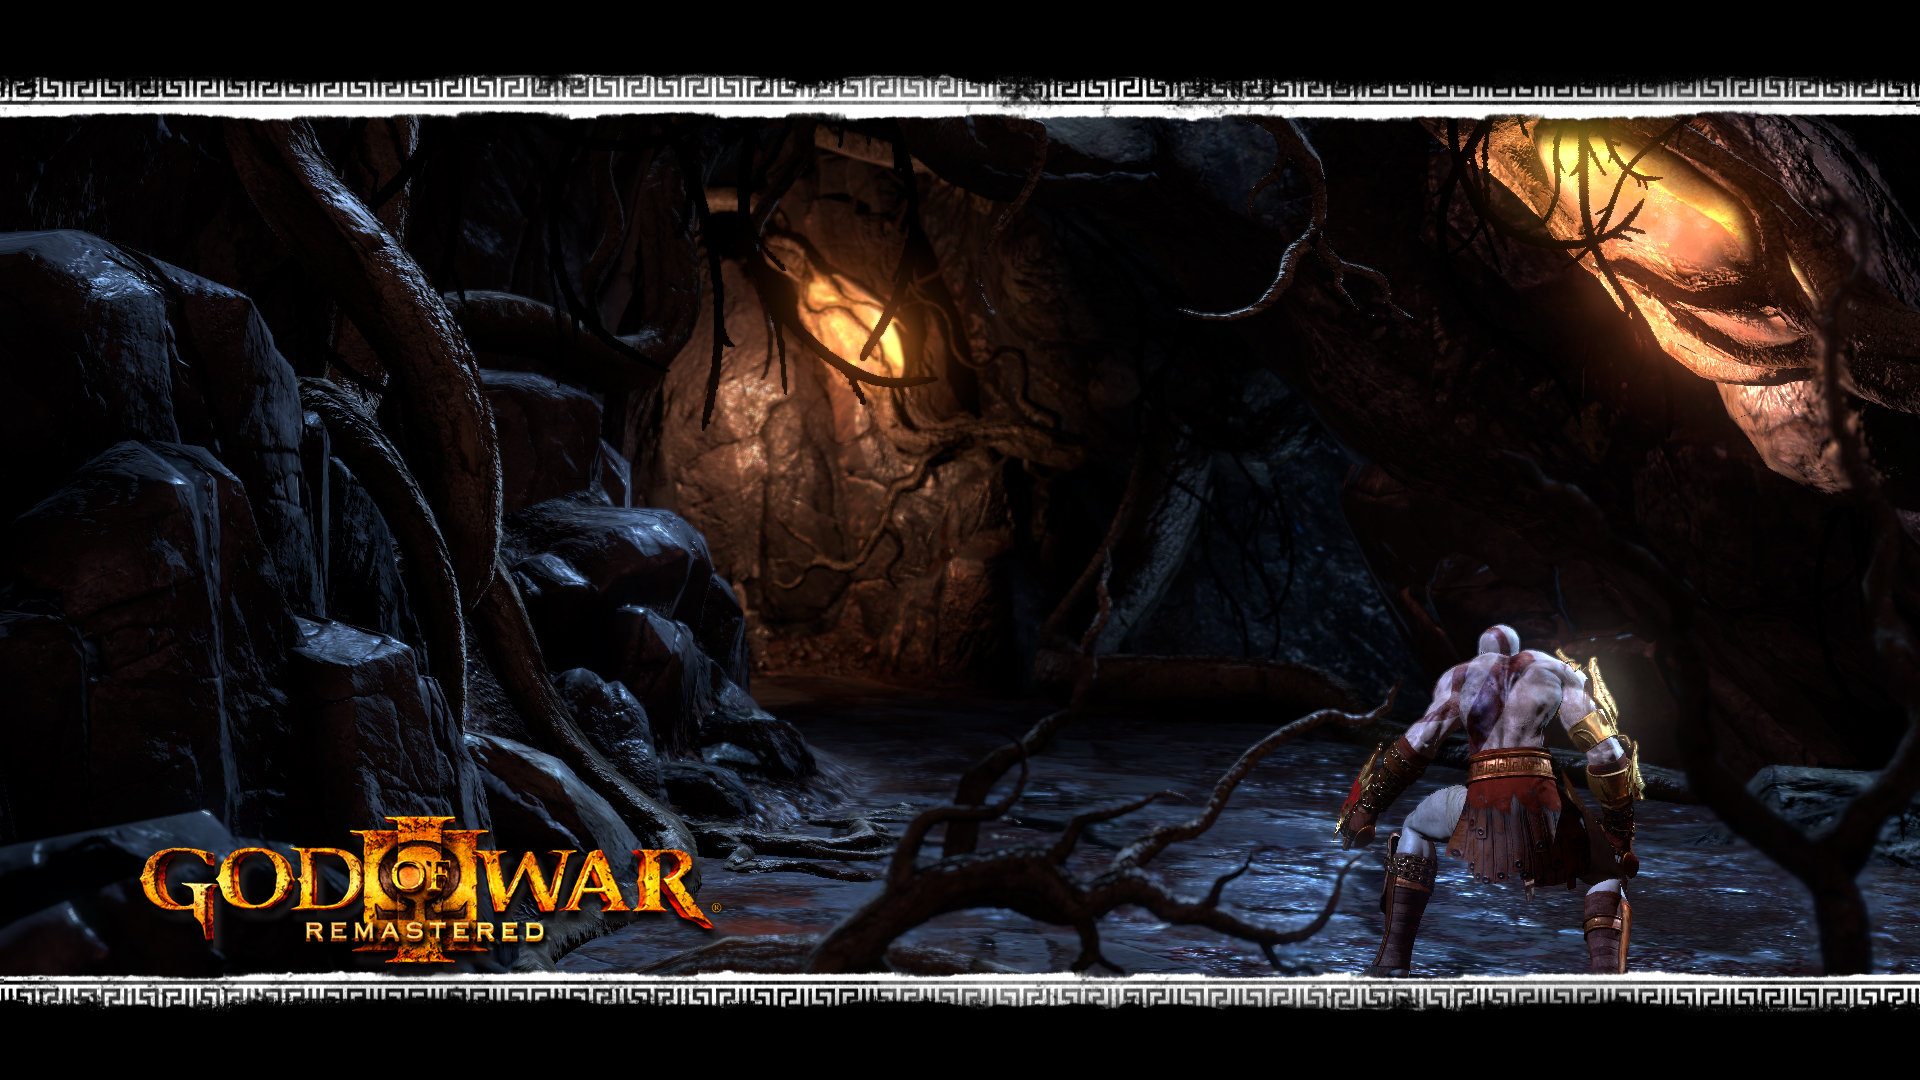 god-of-war-iii-remastered-screen-06-ps4-